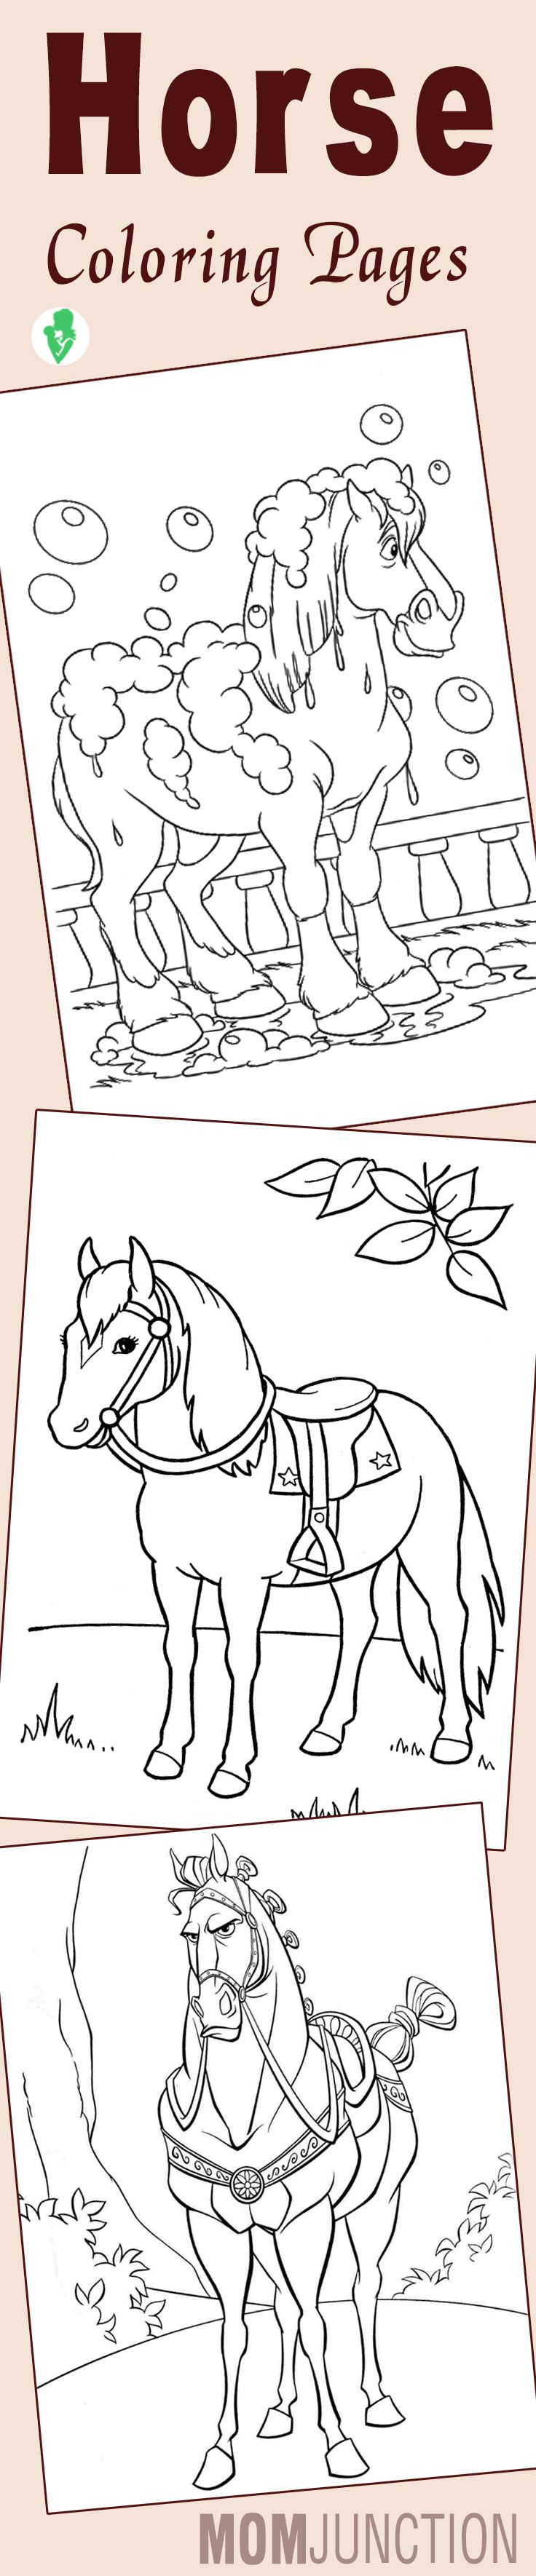 Top free printable horse coloring pages online for kiddos at